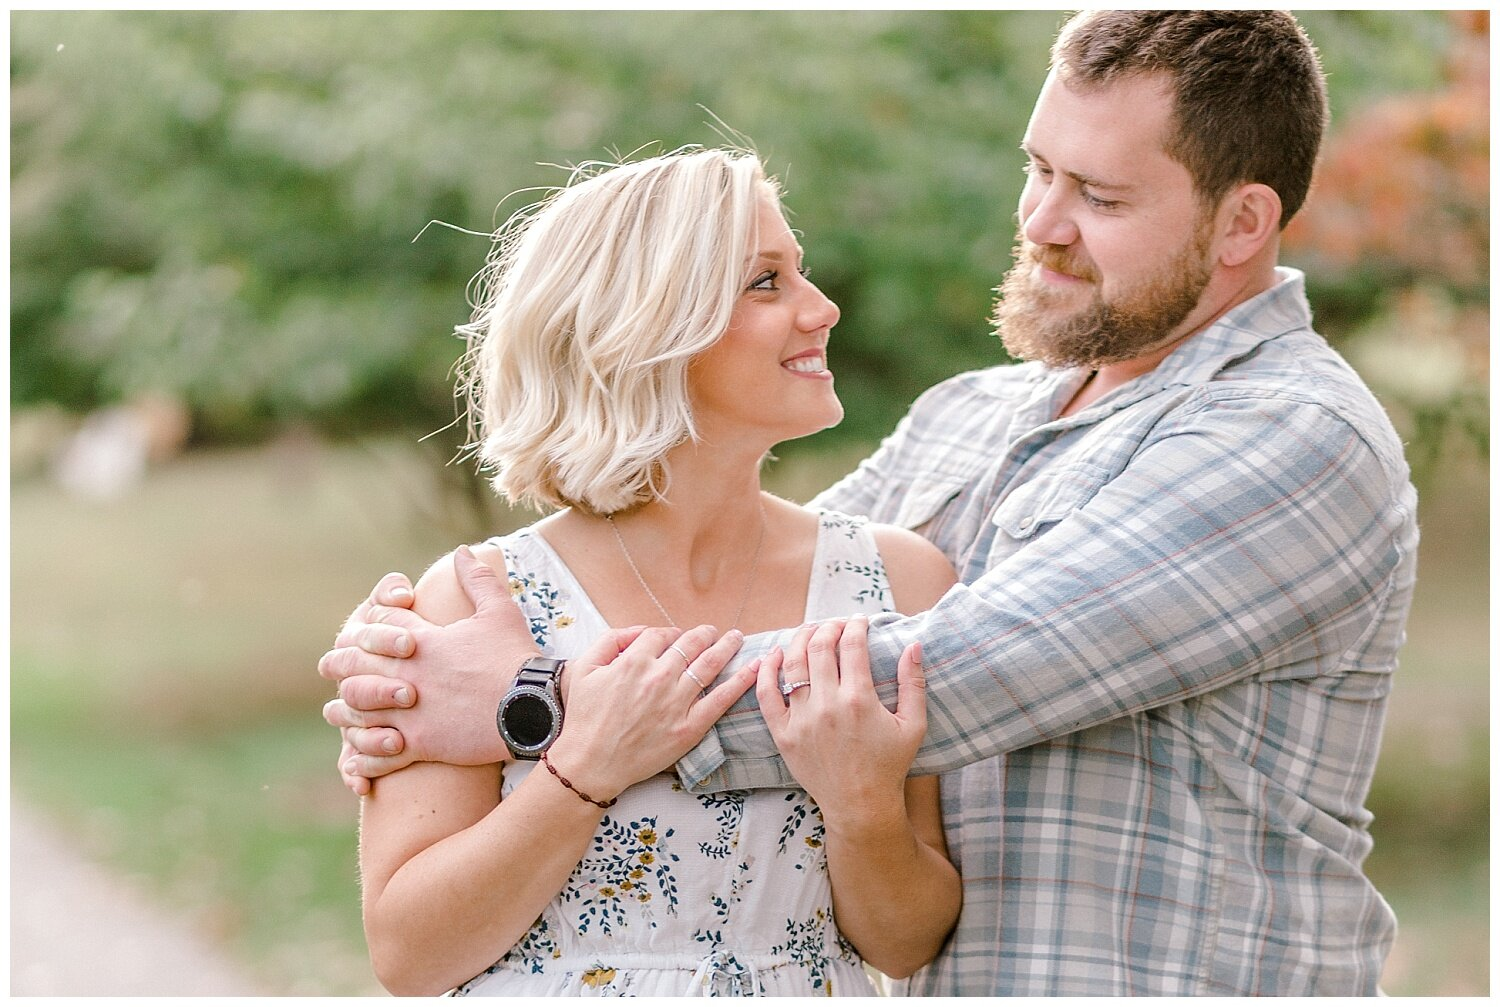 Allentown rose garden sunset engagement session with a tandem bike by lehigh valley pennsylvania based wedding and lifestyle photographer Jeannie Lytle of Lytle Photography Company_0010.jpg